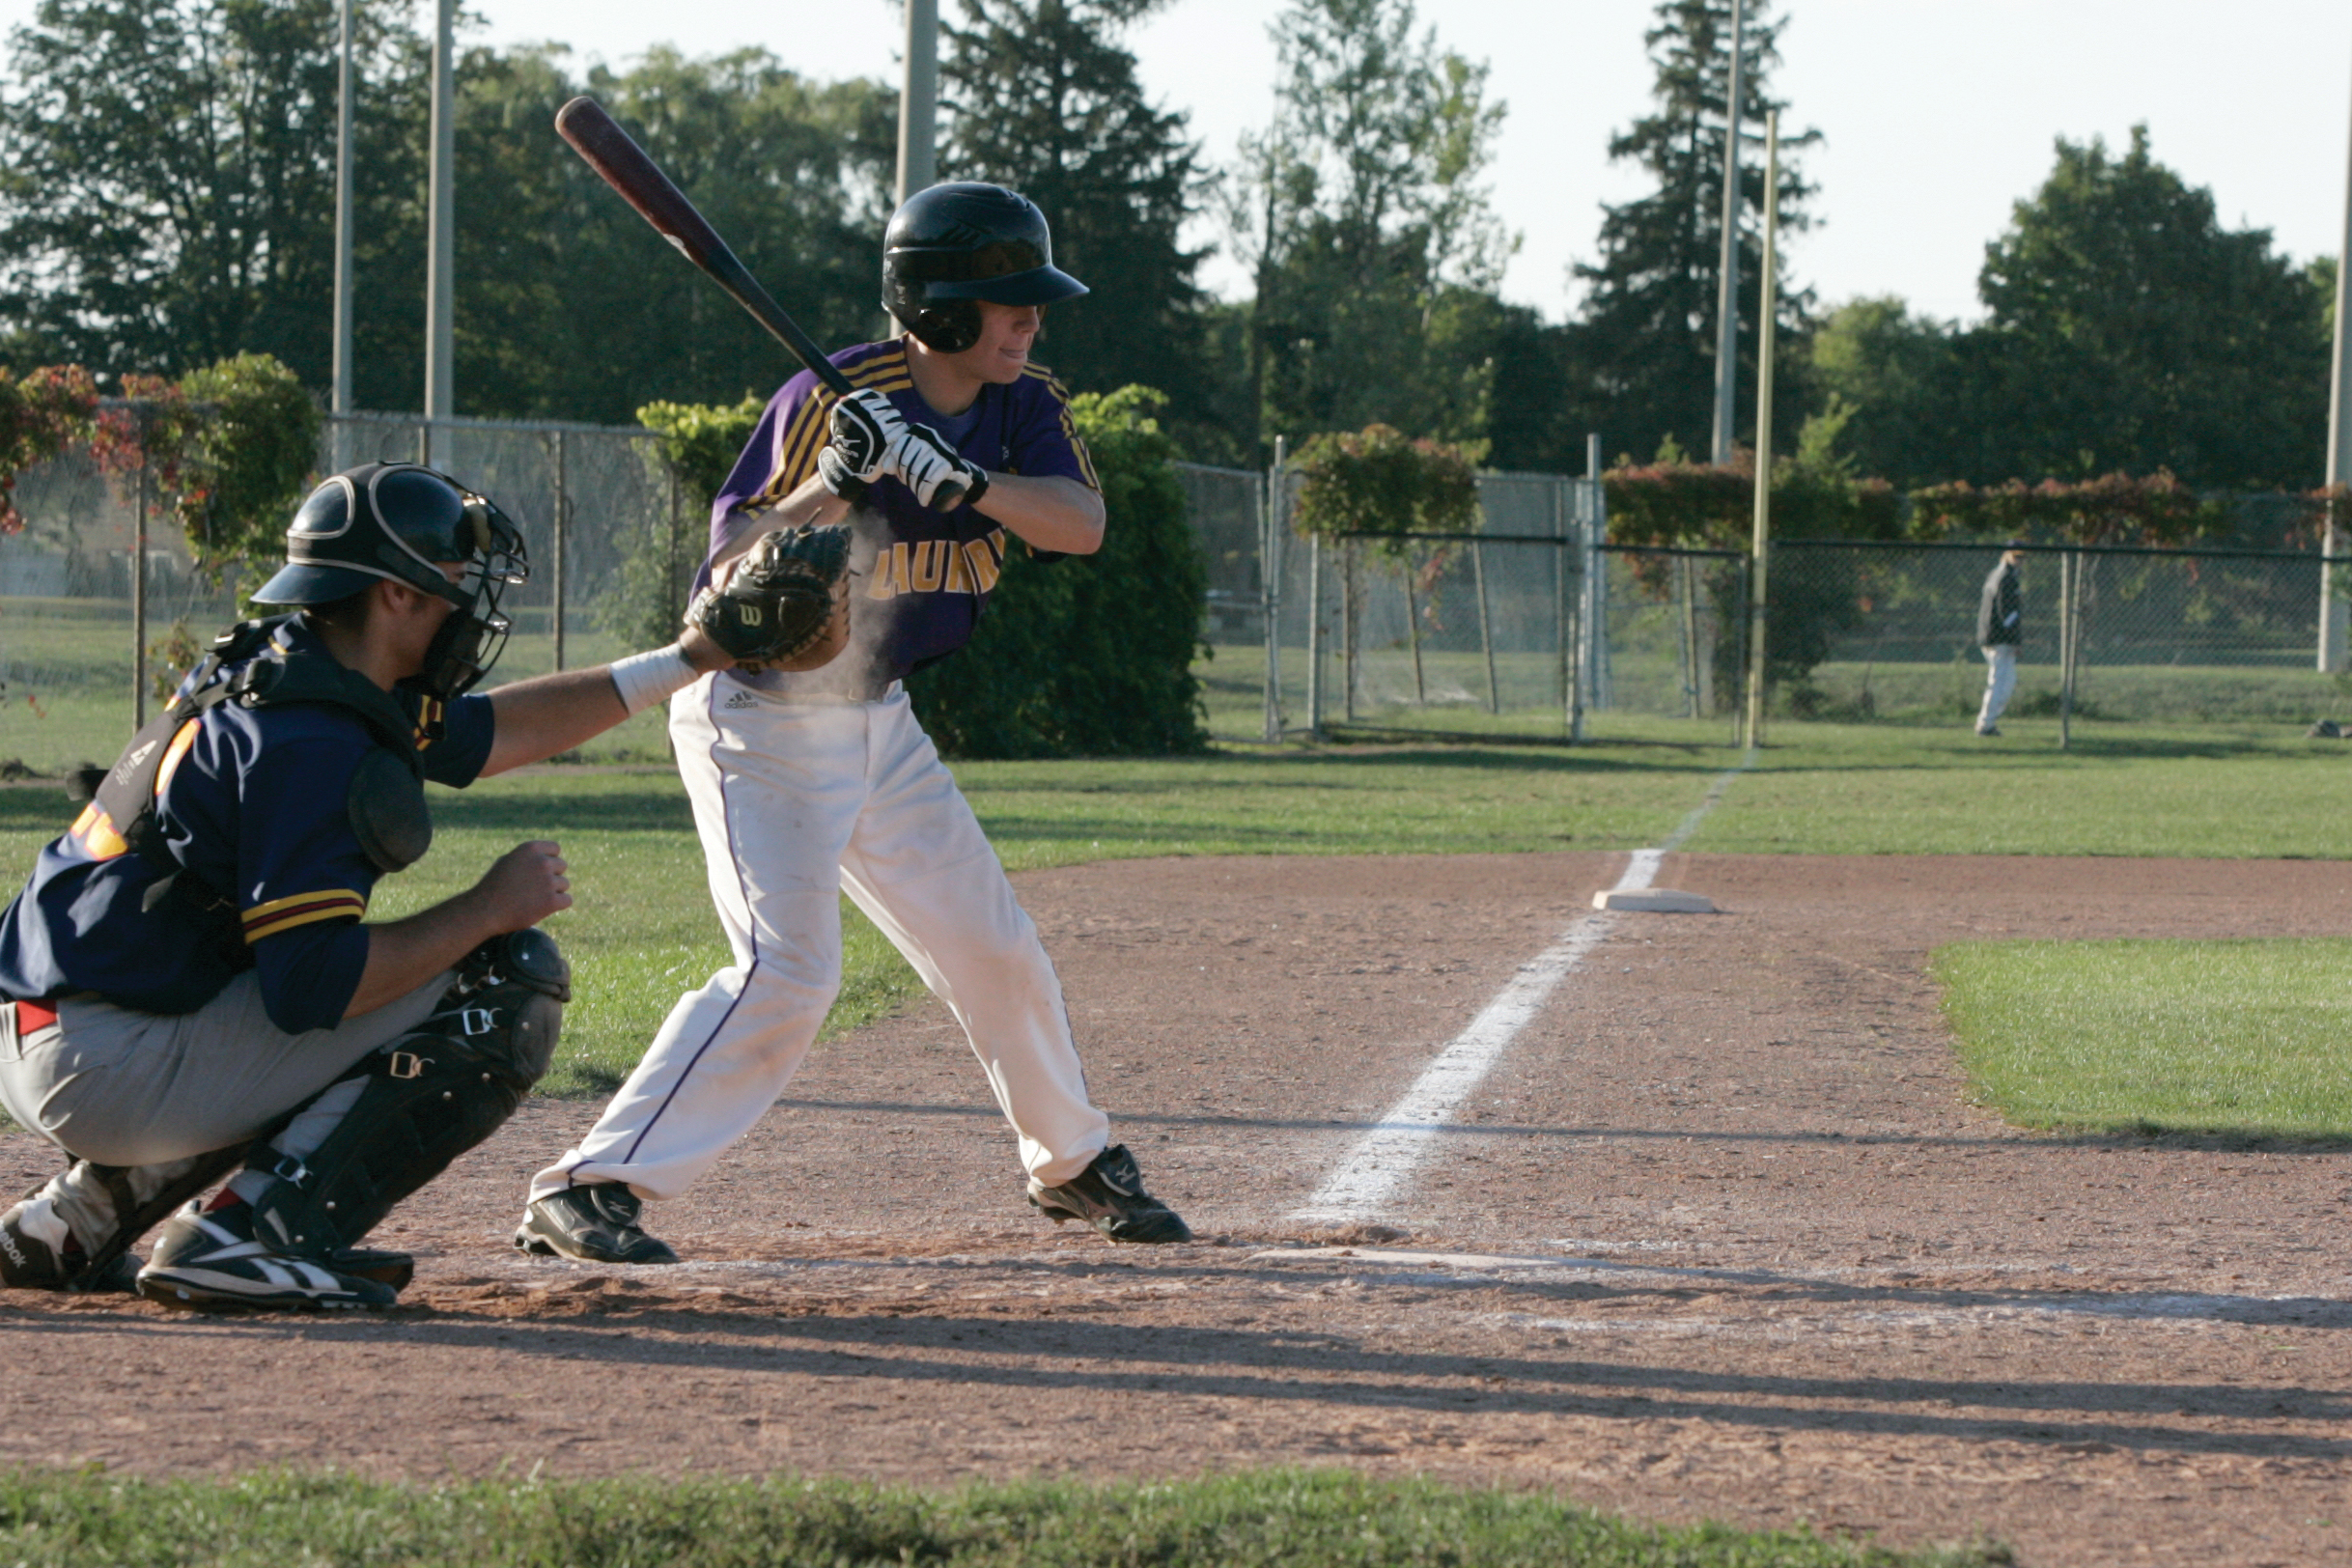 The baseball team will look to improve on their season last year, when they were suspended for four games for hazing. (File photo by Nick Lachance)